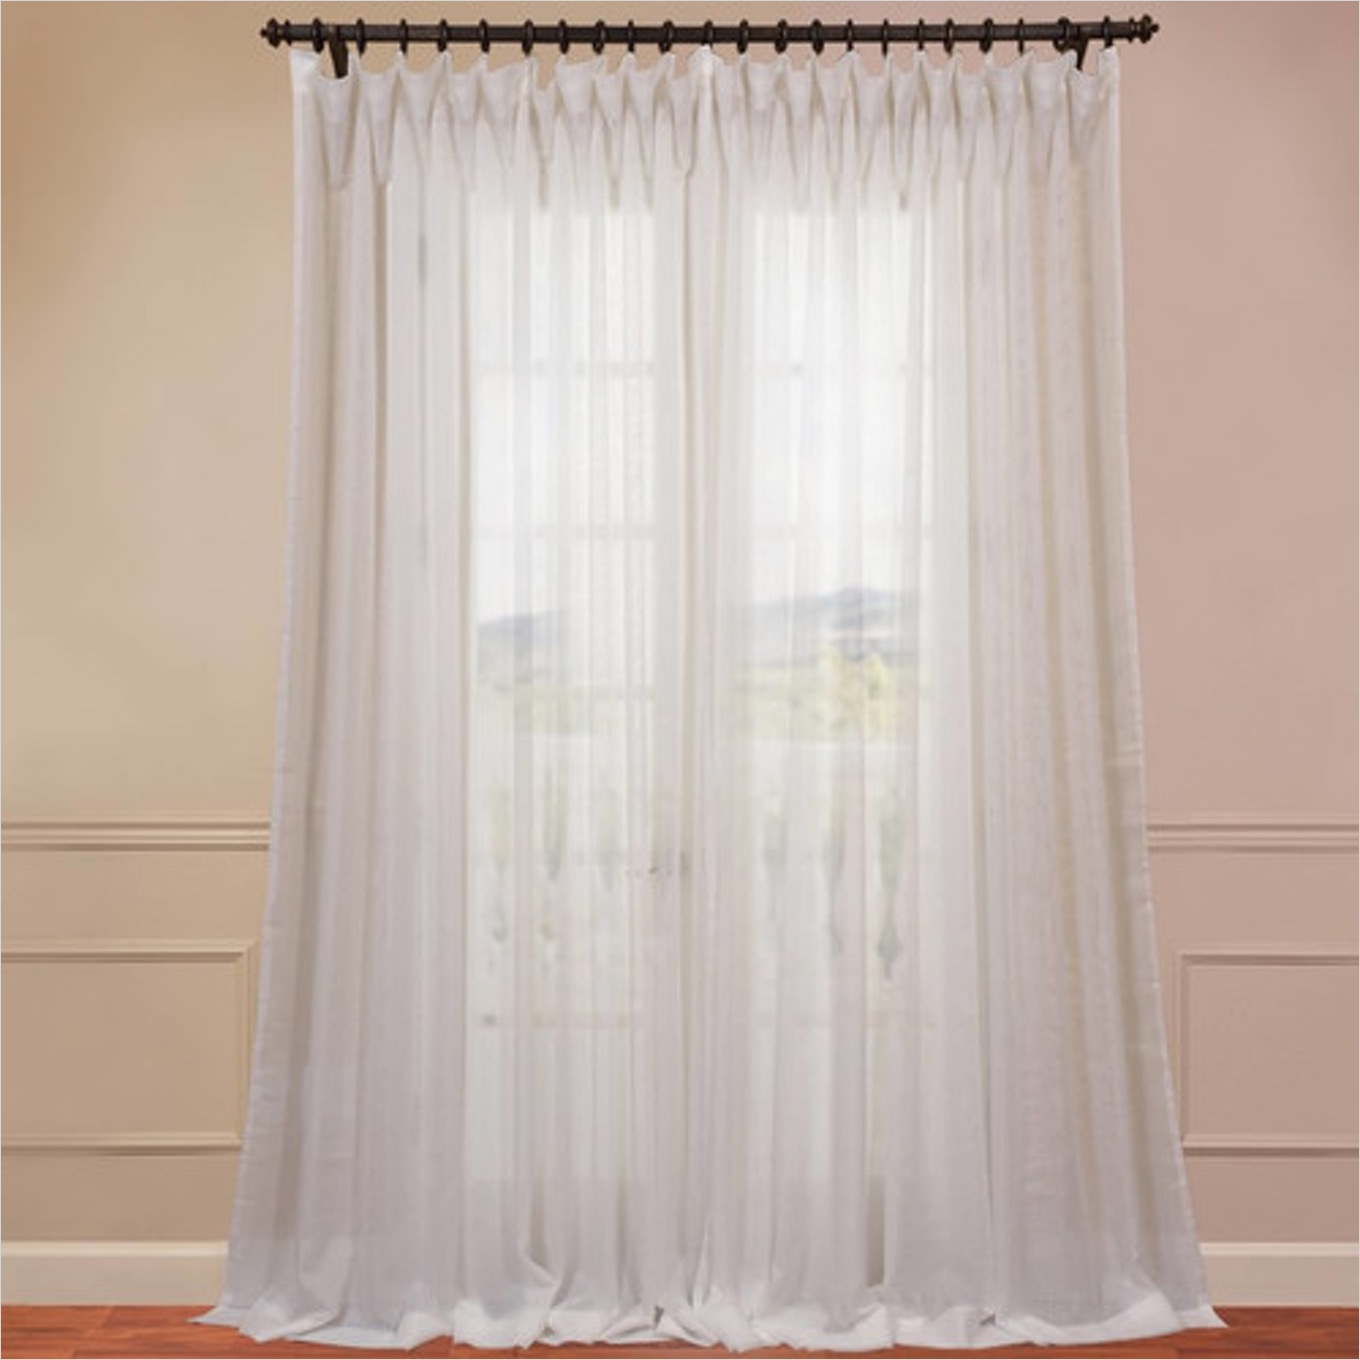 41 Perfect Farmhouse Country Kitchen Curtain Valances 48 Kitchen Curtain Sets Clearance 8